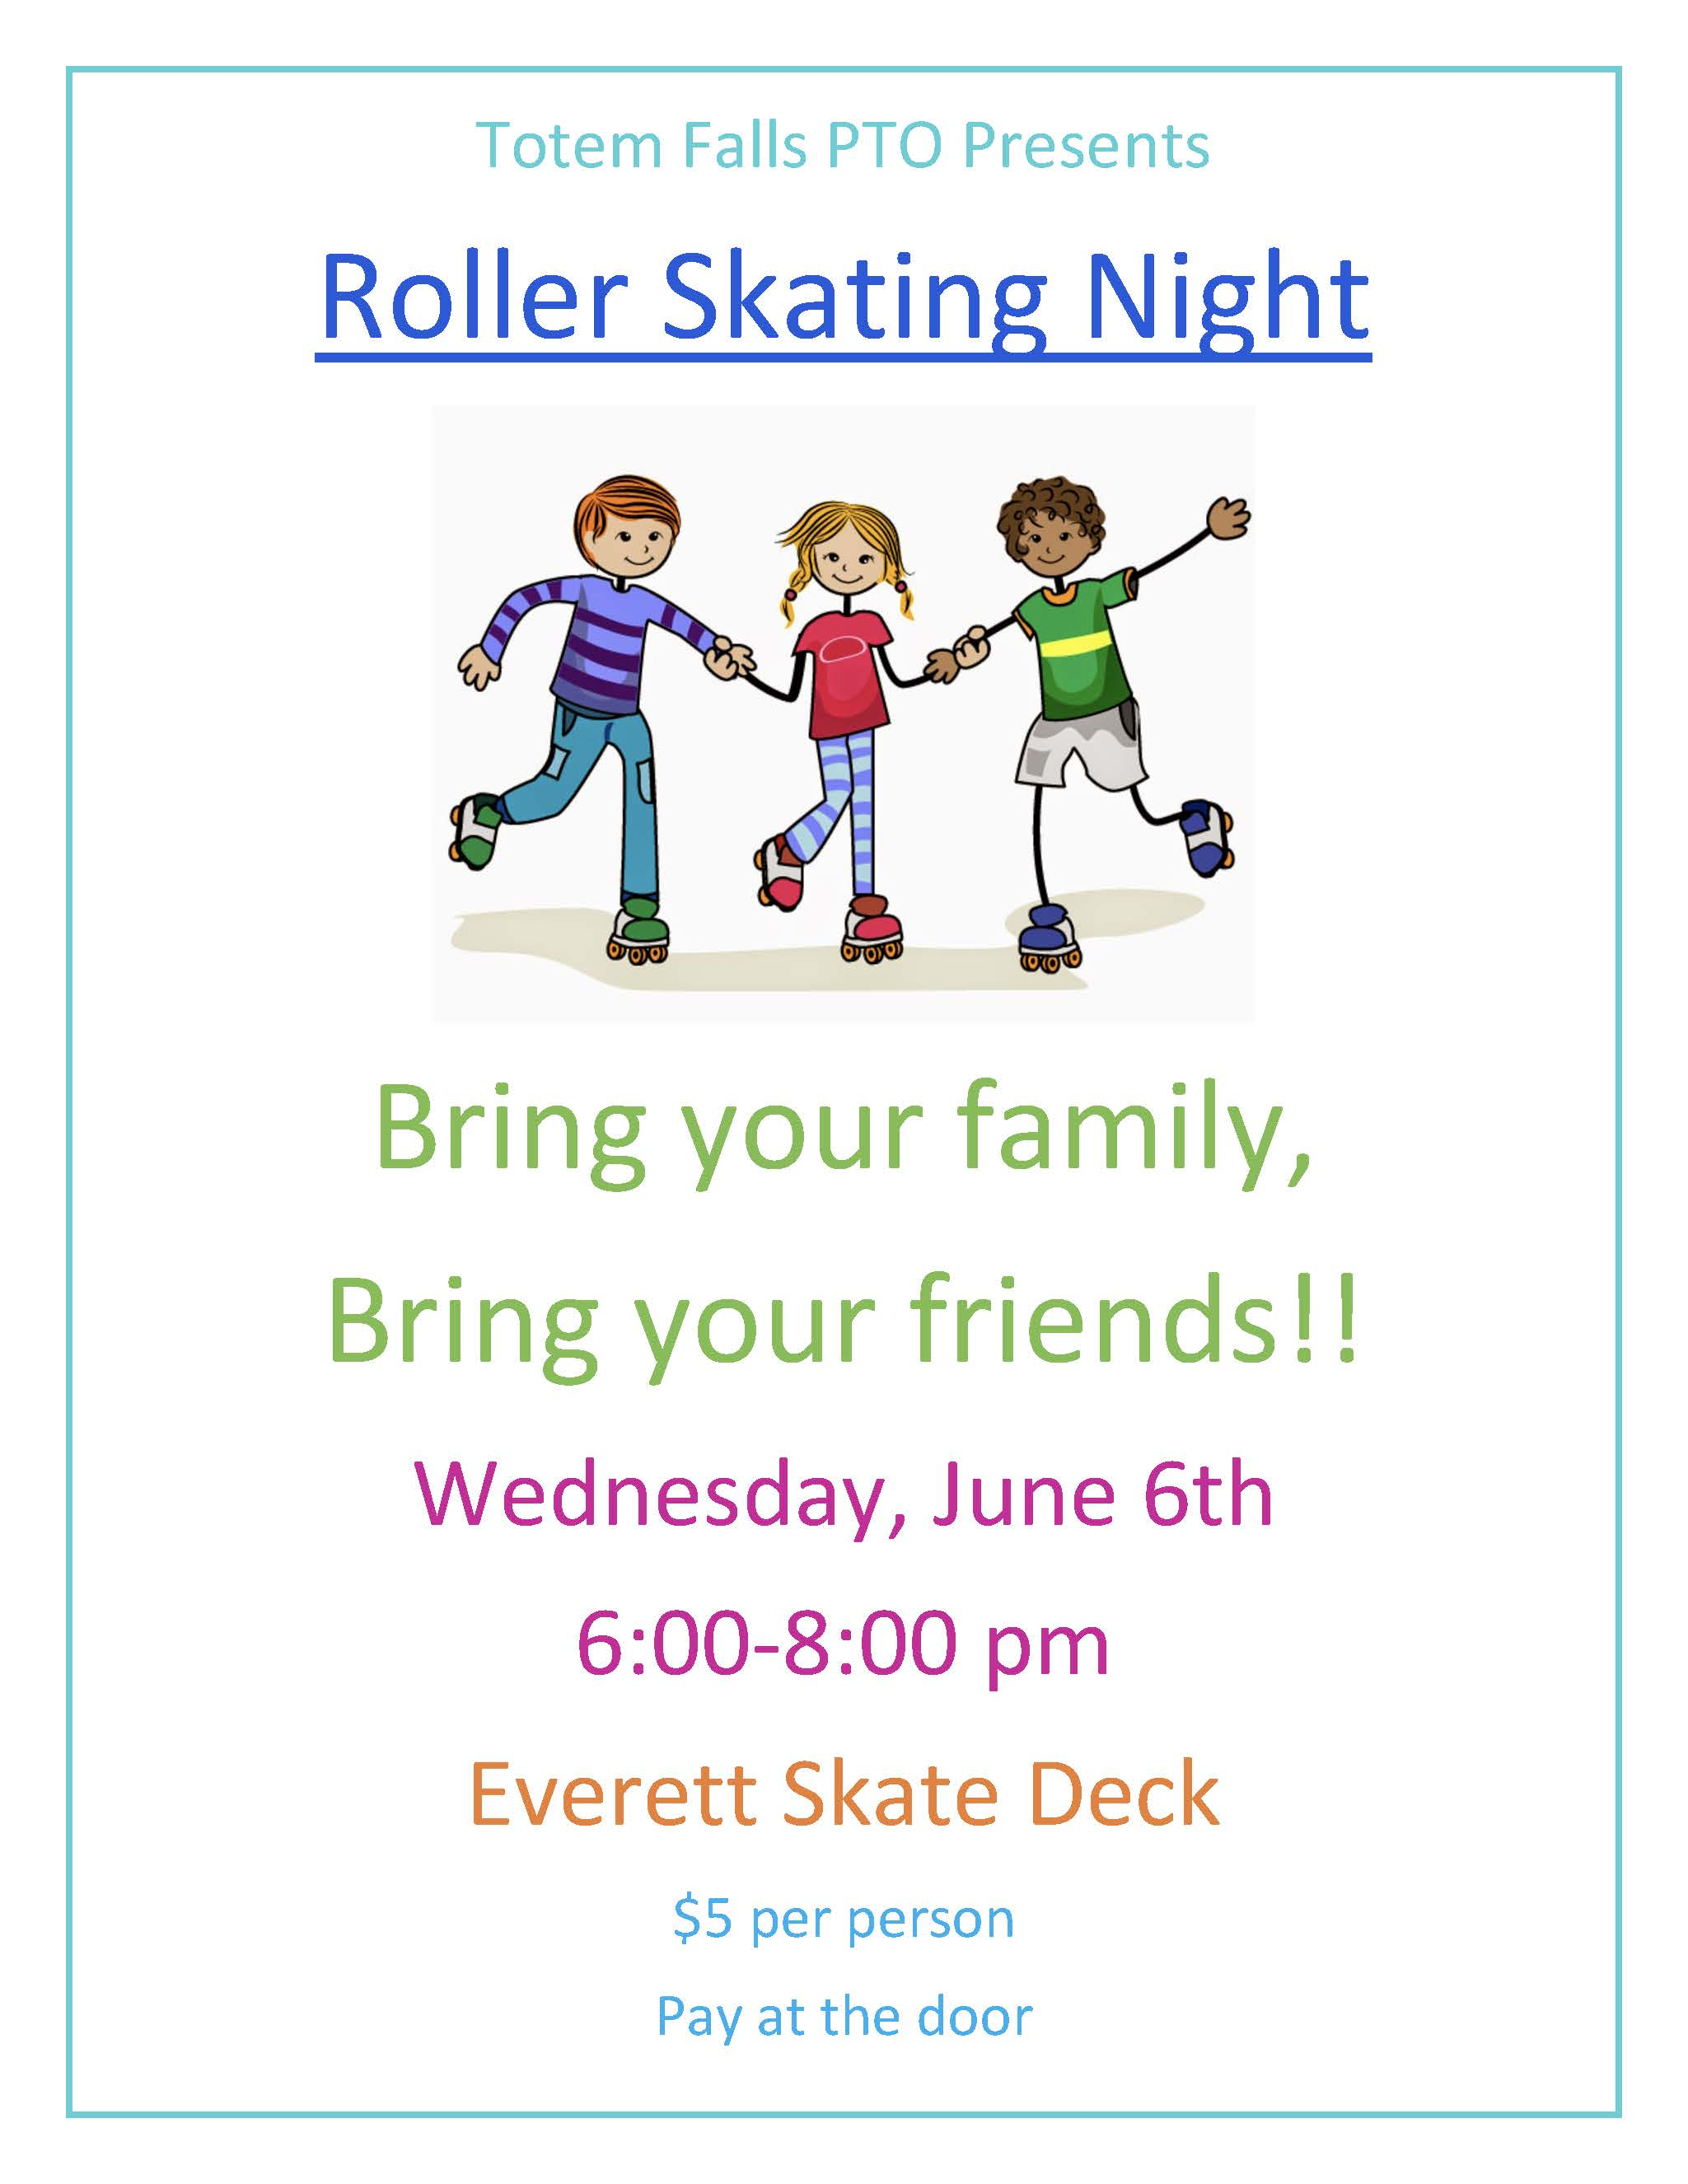 images/family-fun-events/2018SkatePartyInvite.jpg